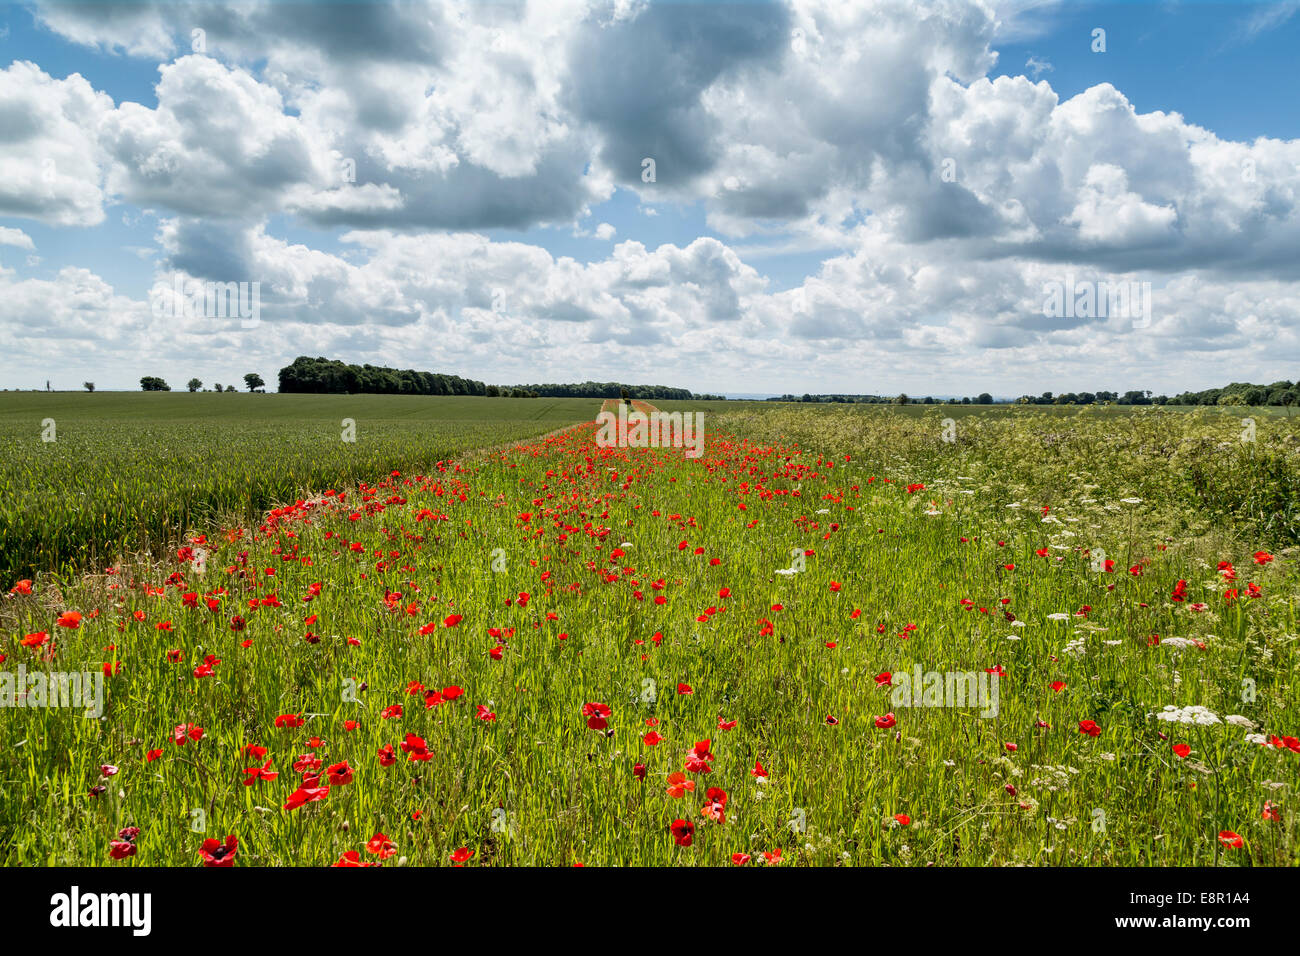 Beautiful view across  a field in the Cotswolds of  a Poppies near the cotswold town of Cirencester in England, - Stock Image